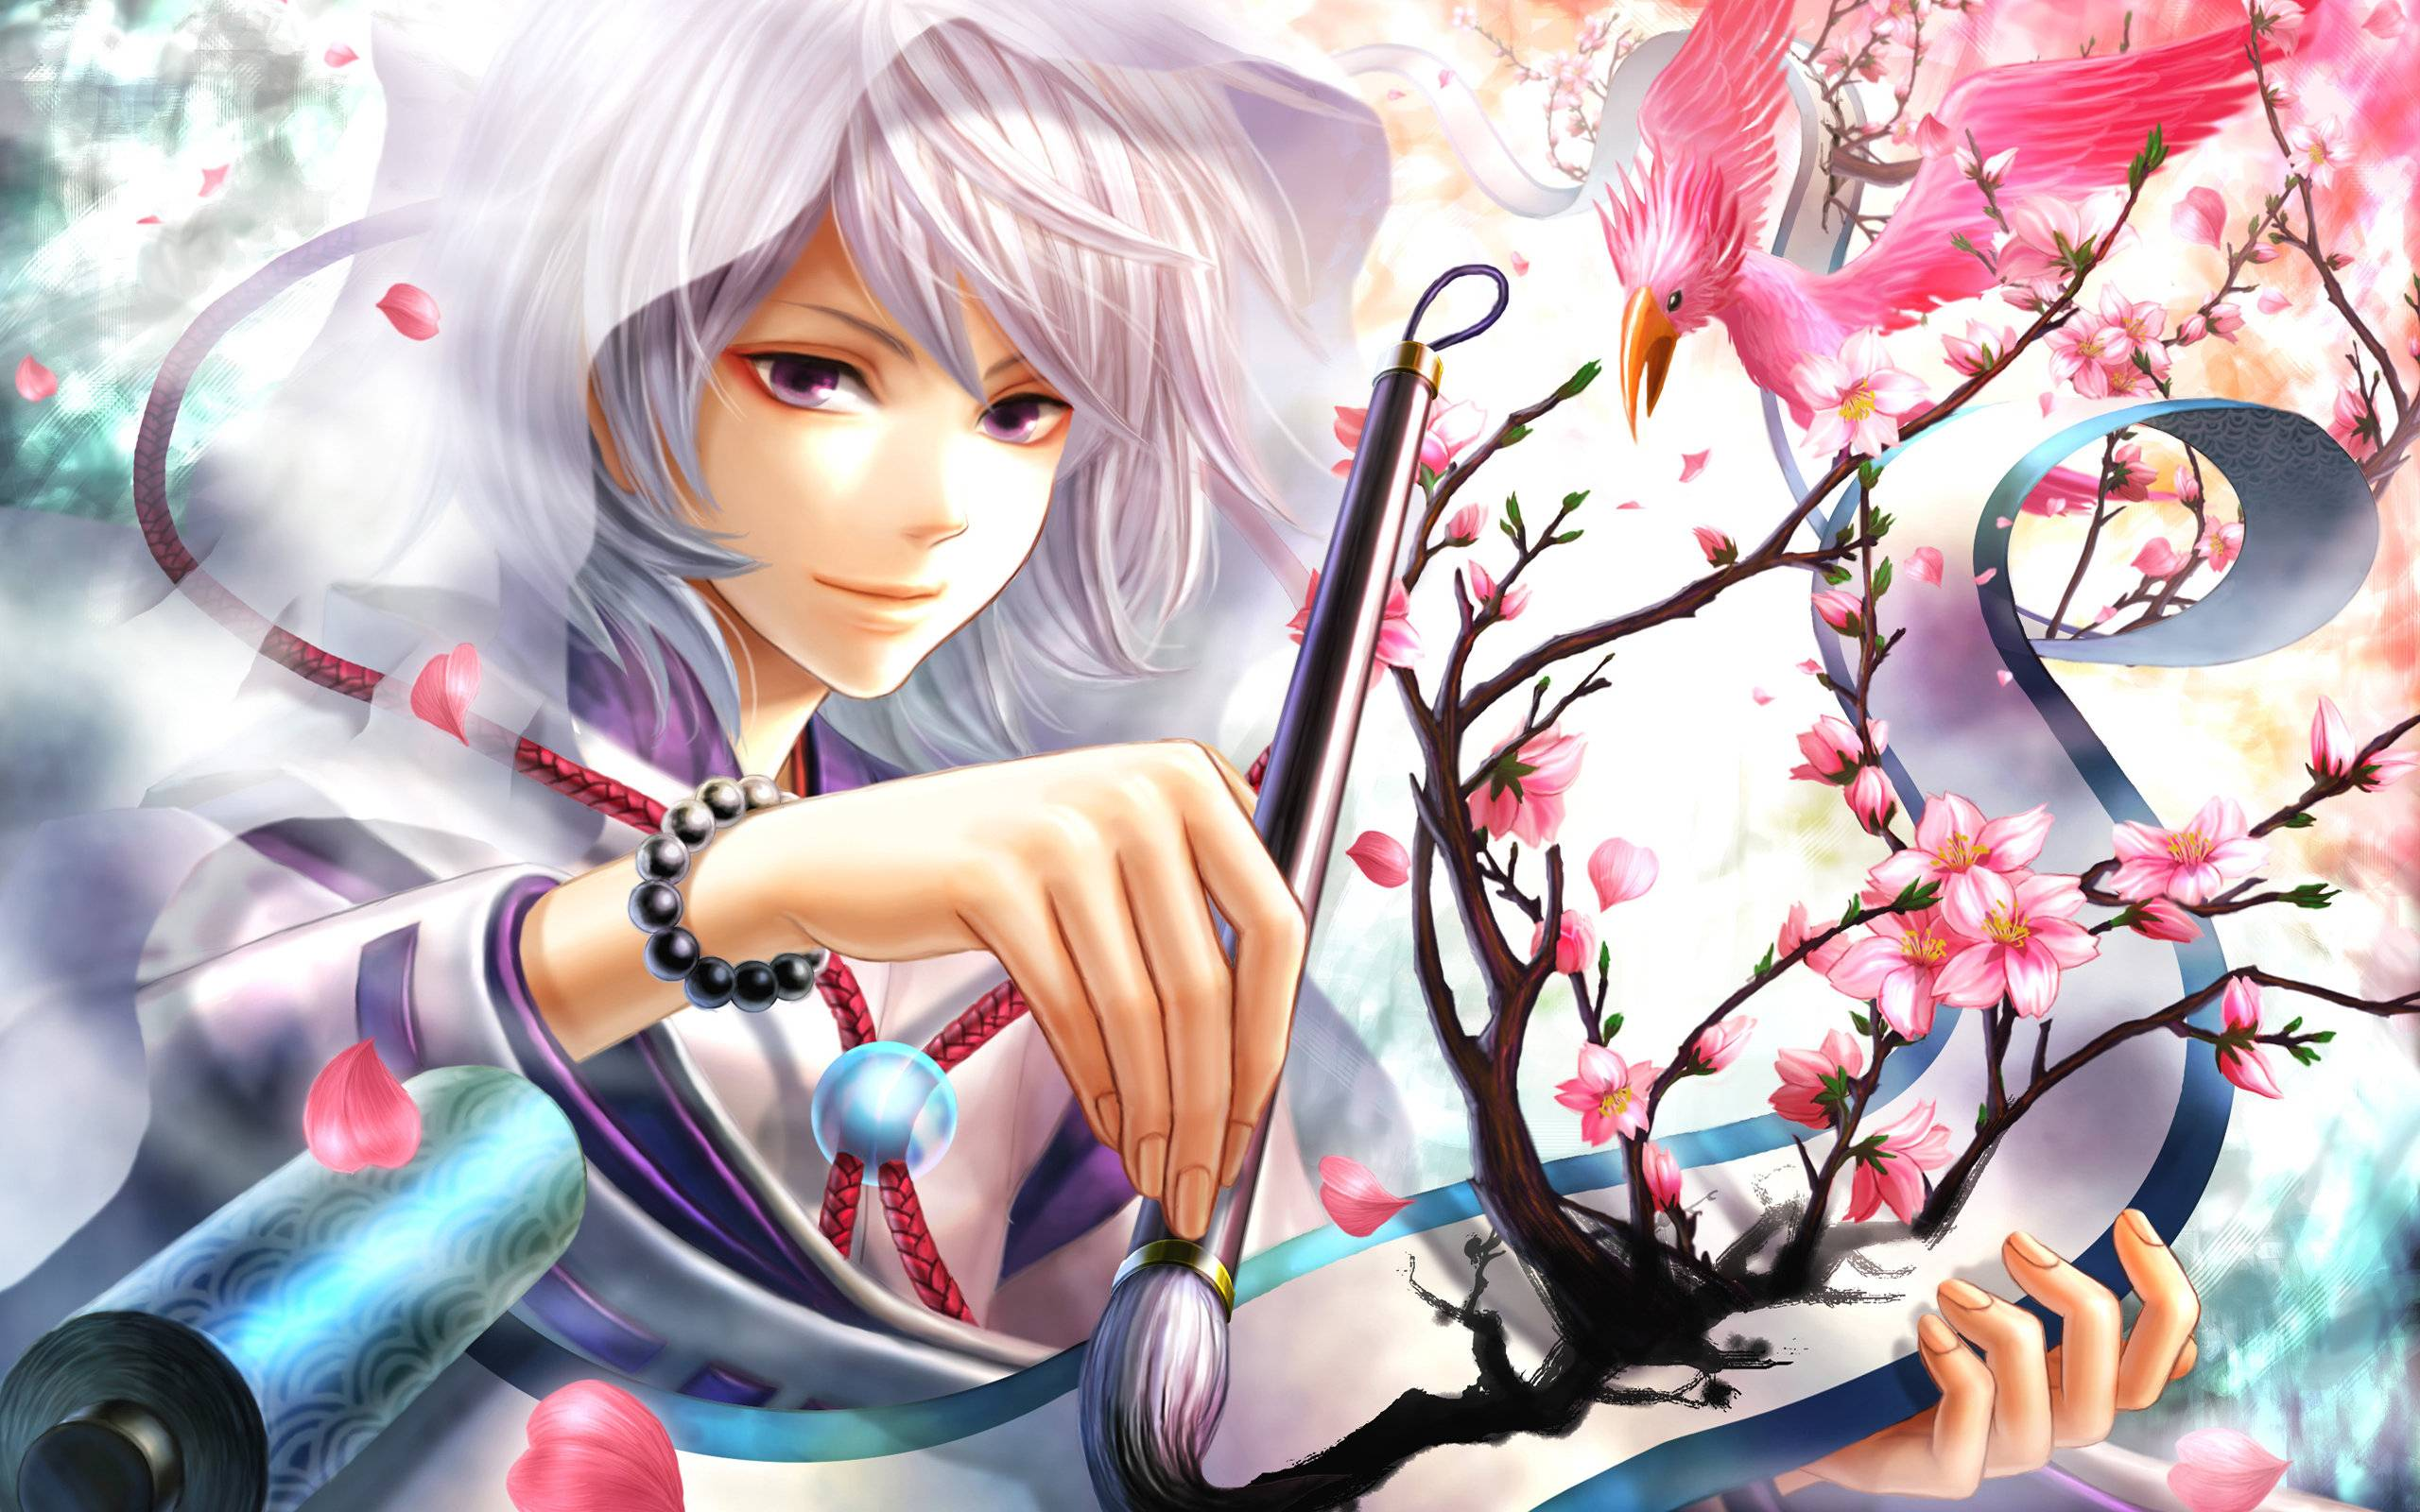 Cool anime hd wallpapers pixelstalk net - Anime images download ...